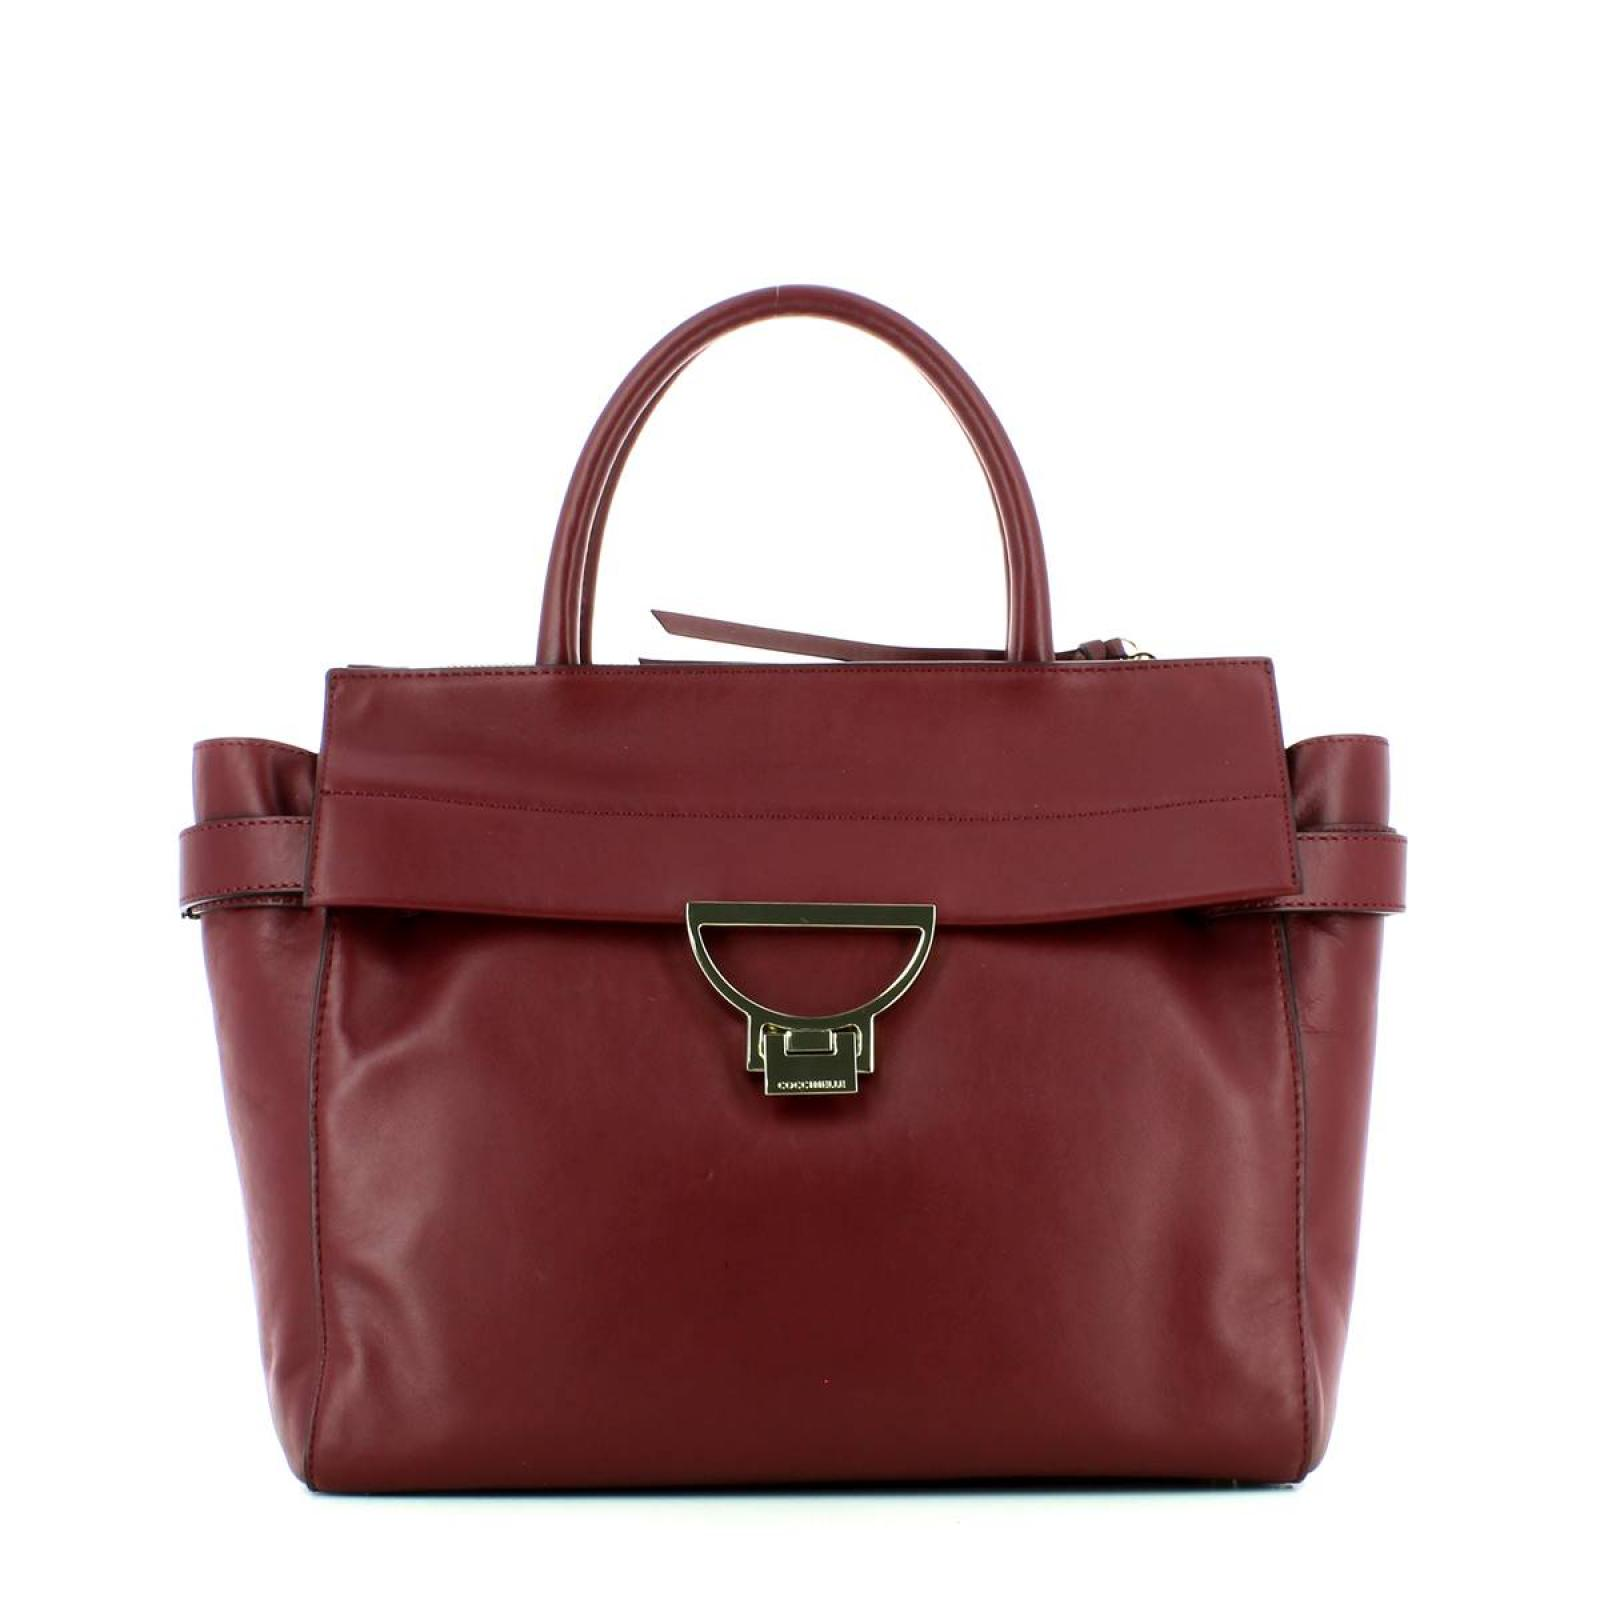 Arlettis Collection Bag